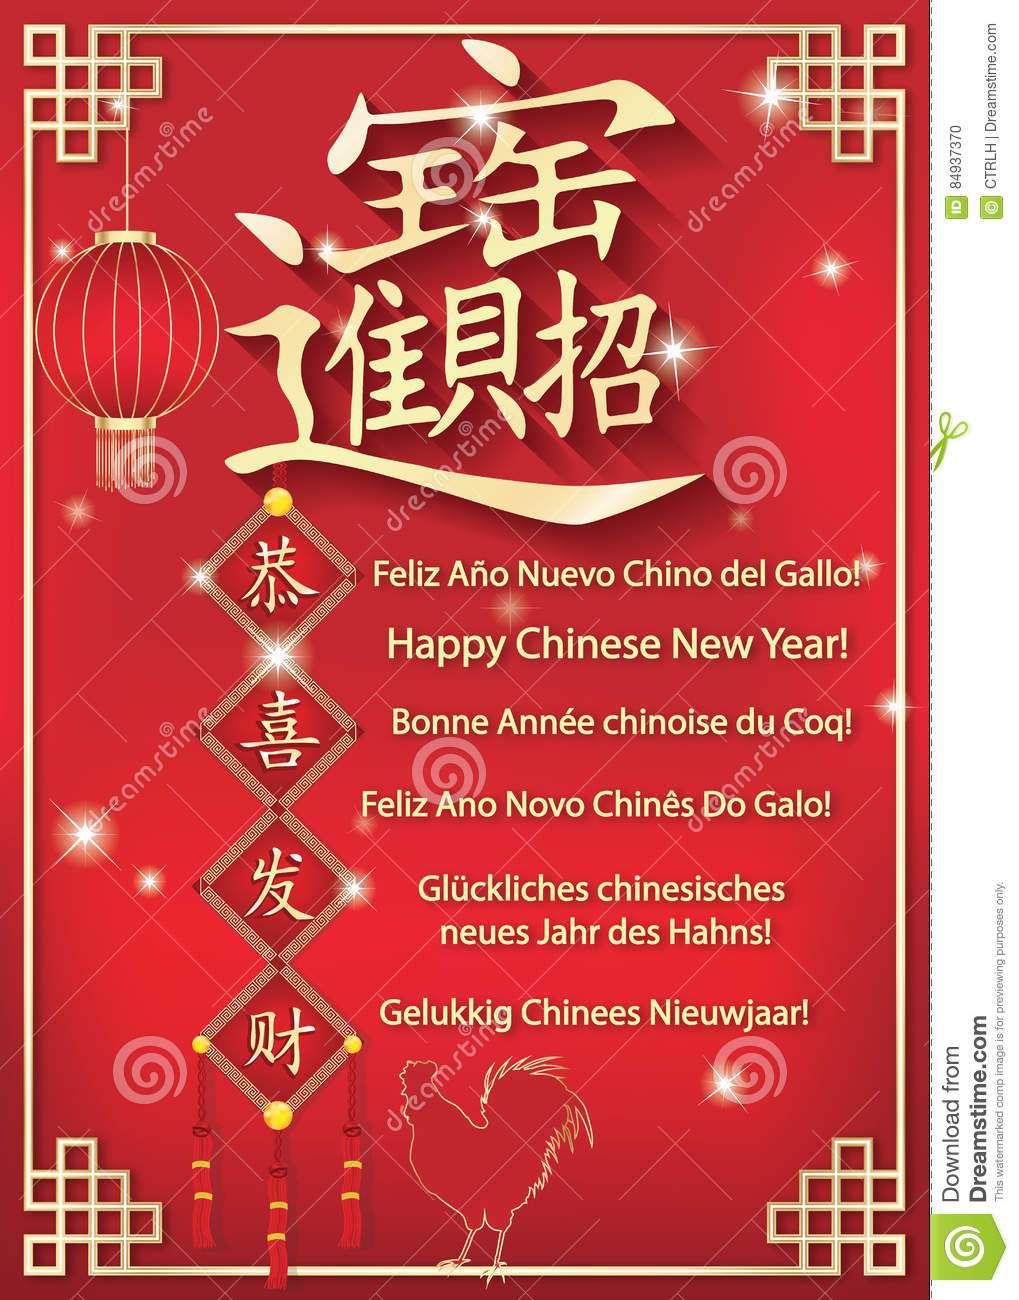 Chinese New Year 2017 Printable Greeting Card In Many Languages